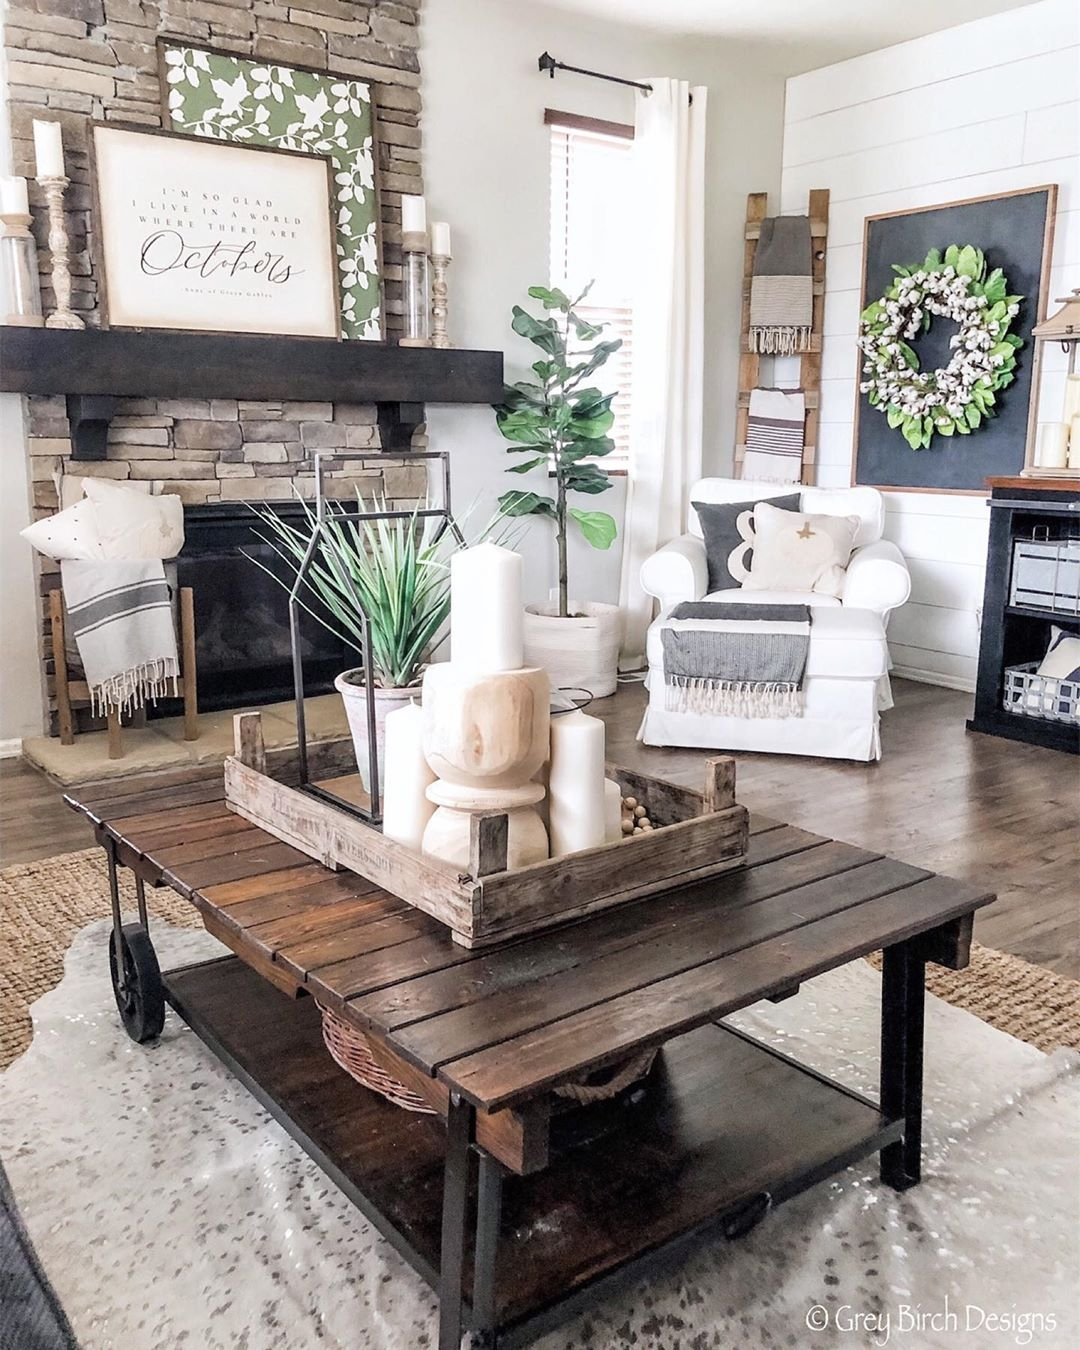 The big pro of the devore metallic cowhide rug is the quality, these cowhides are very easy to clean and maintain, blends and mixes with any Canadian decor